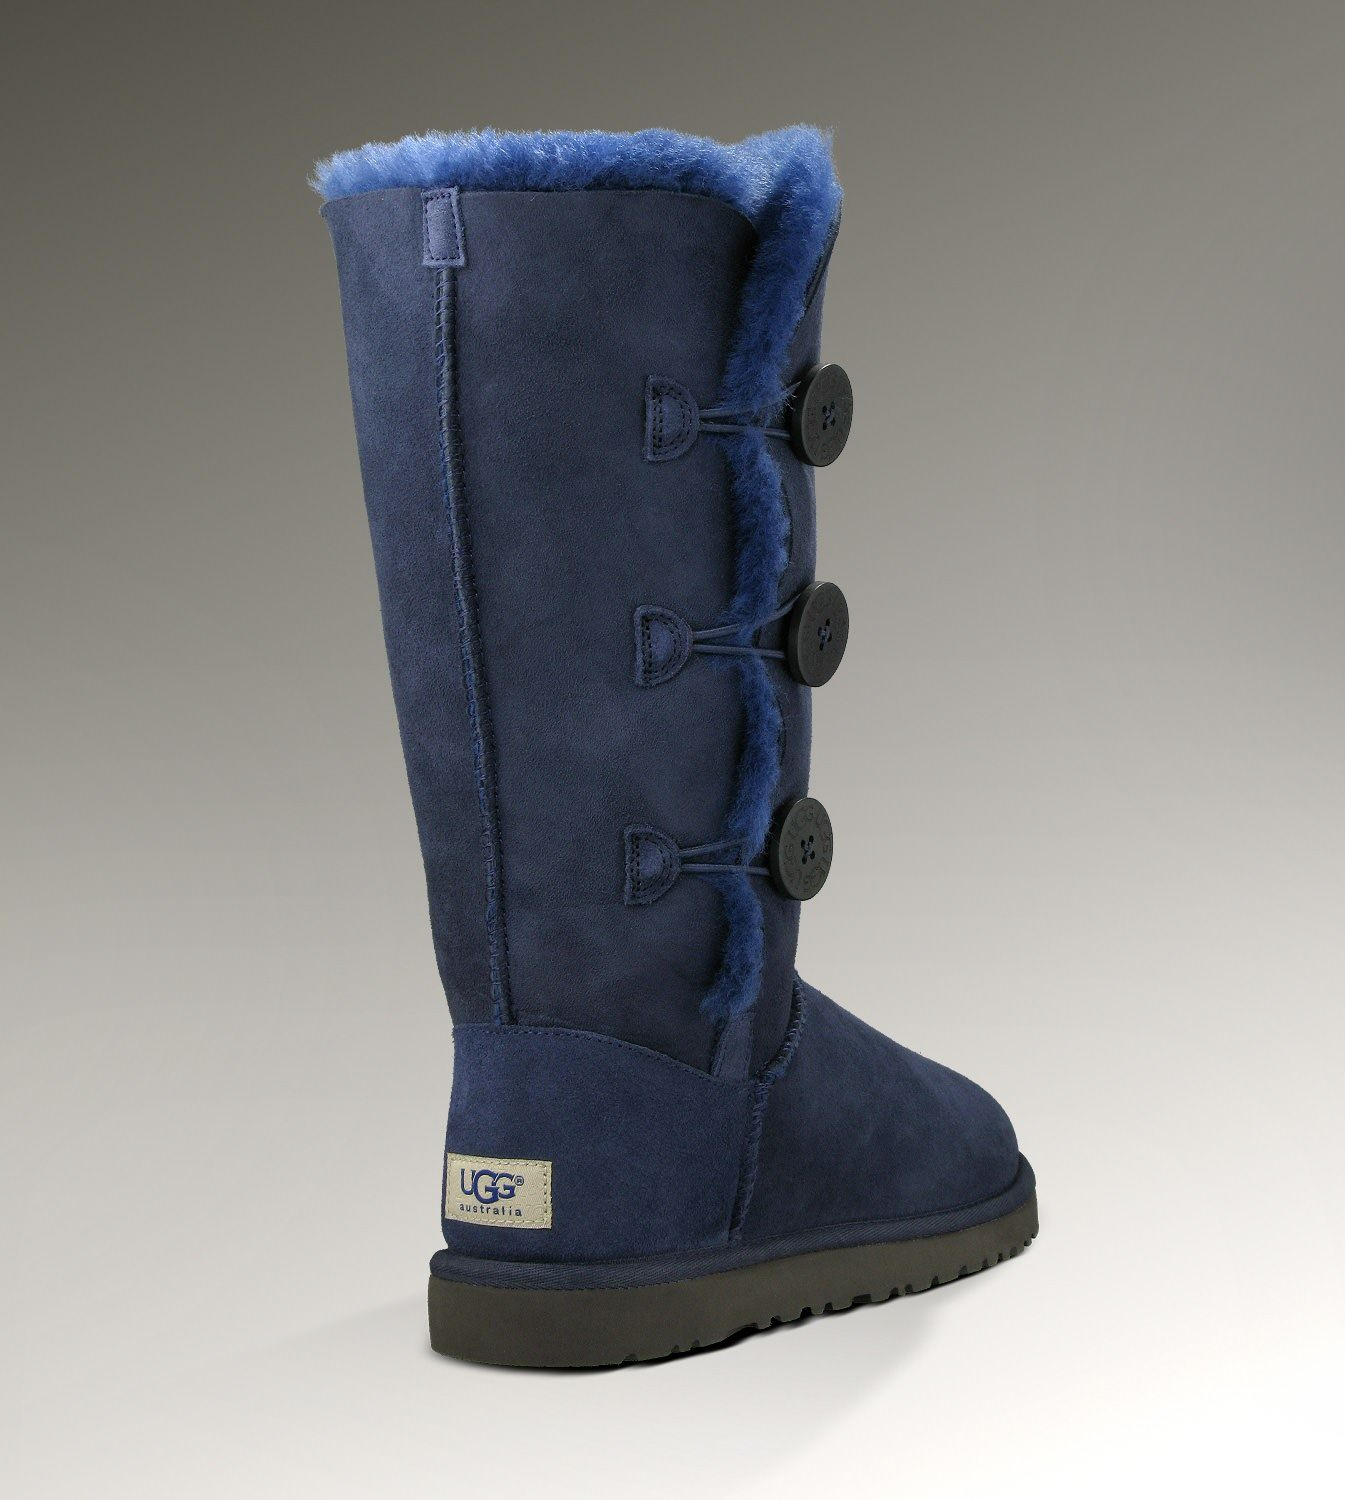 cheapest ugg bailey button boots